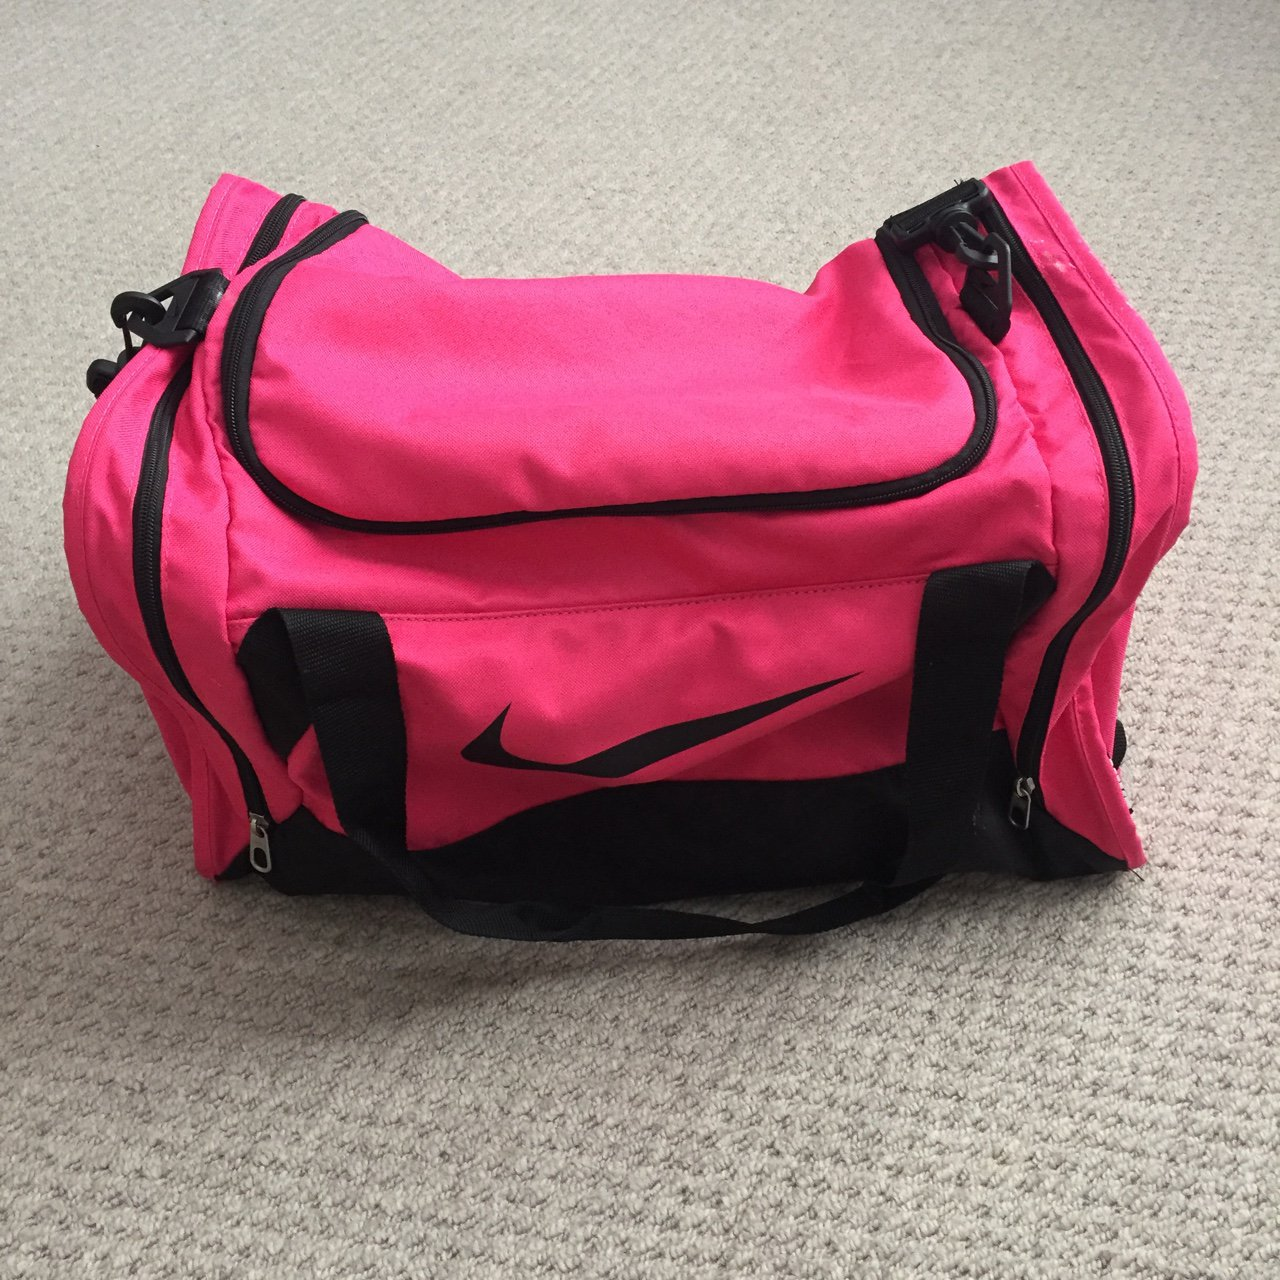 Nike  pink  hold-all  gym  bag  hot pink  gymbag  sport of - Depop 6918ea6b9